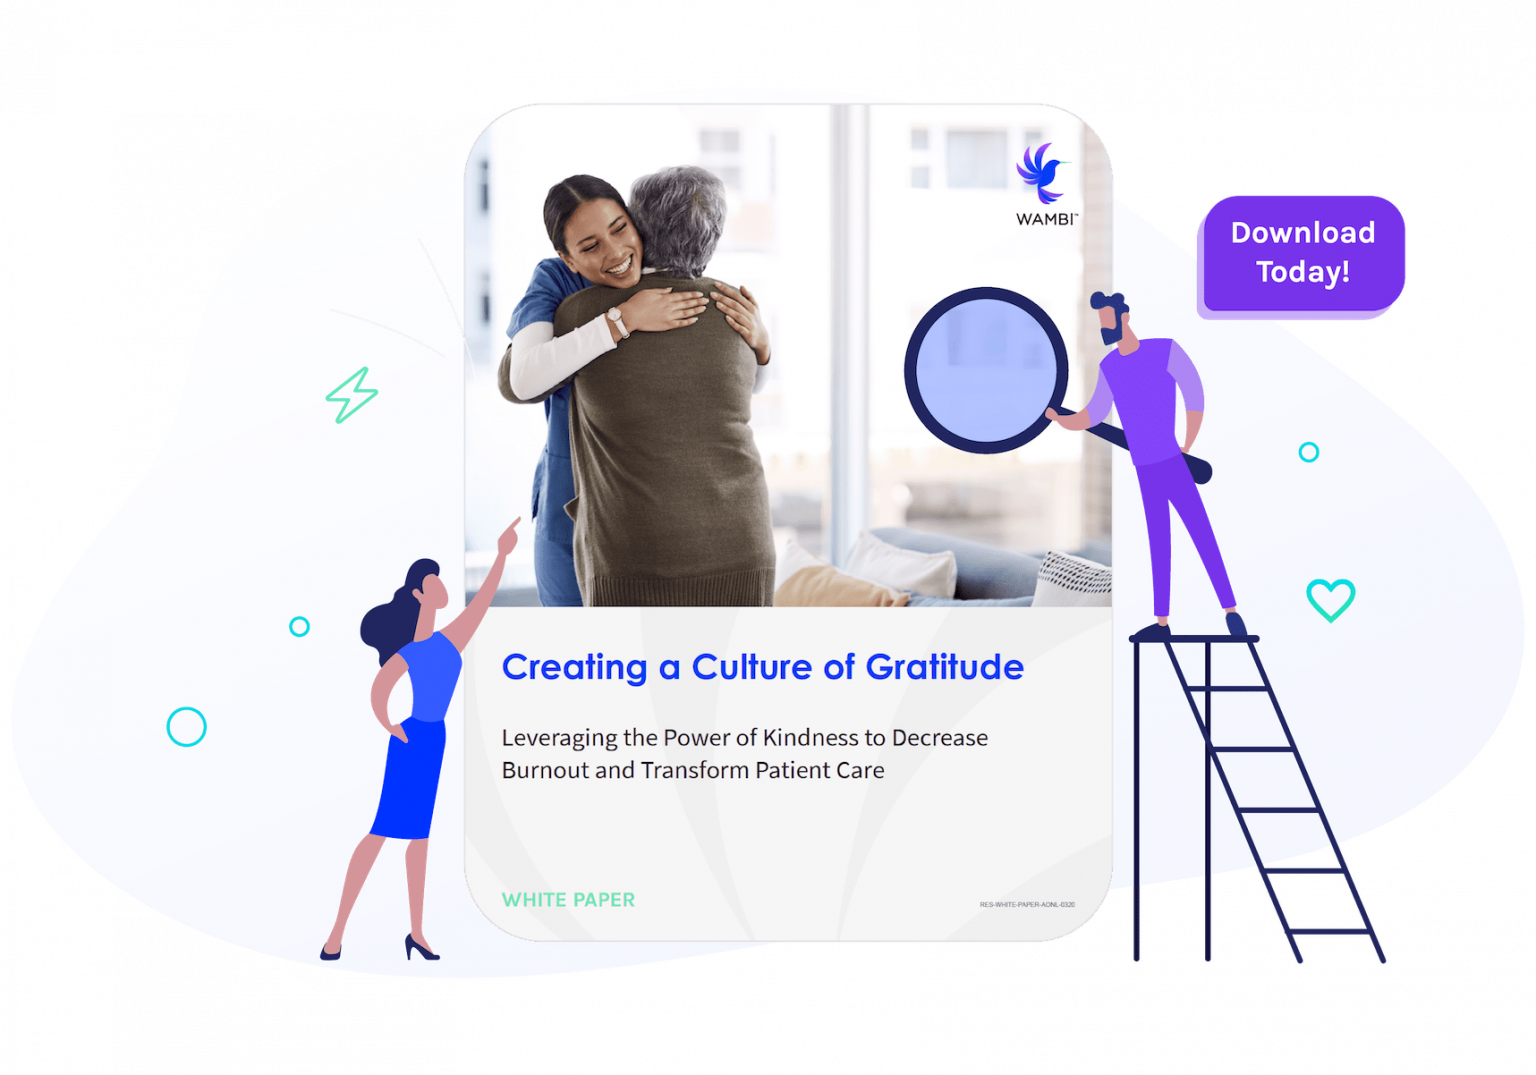 Culture of Gratitude Whitepaper Presented by Wambi